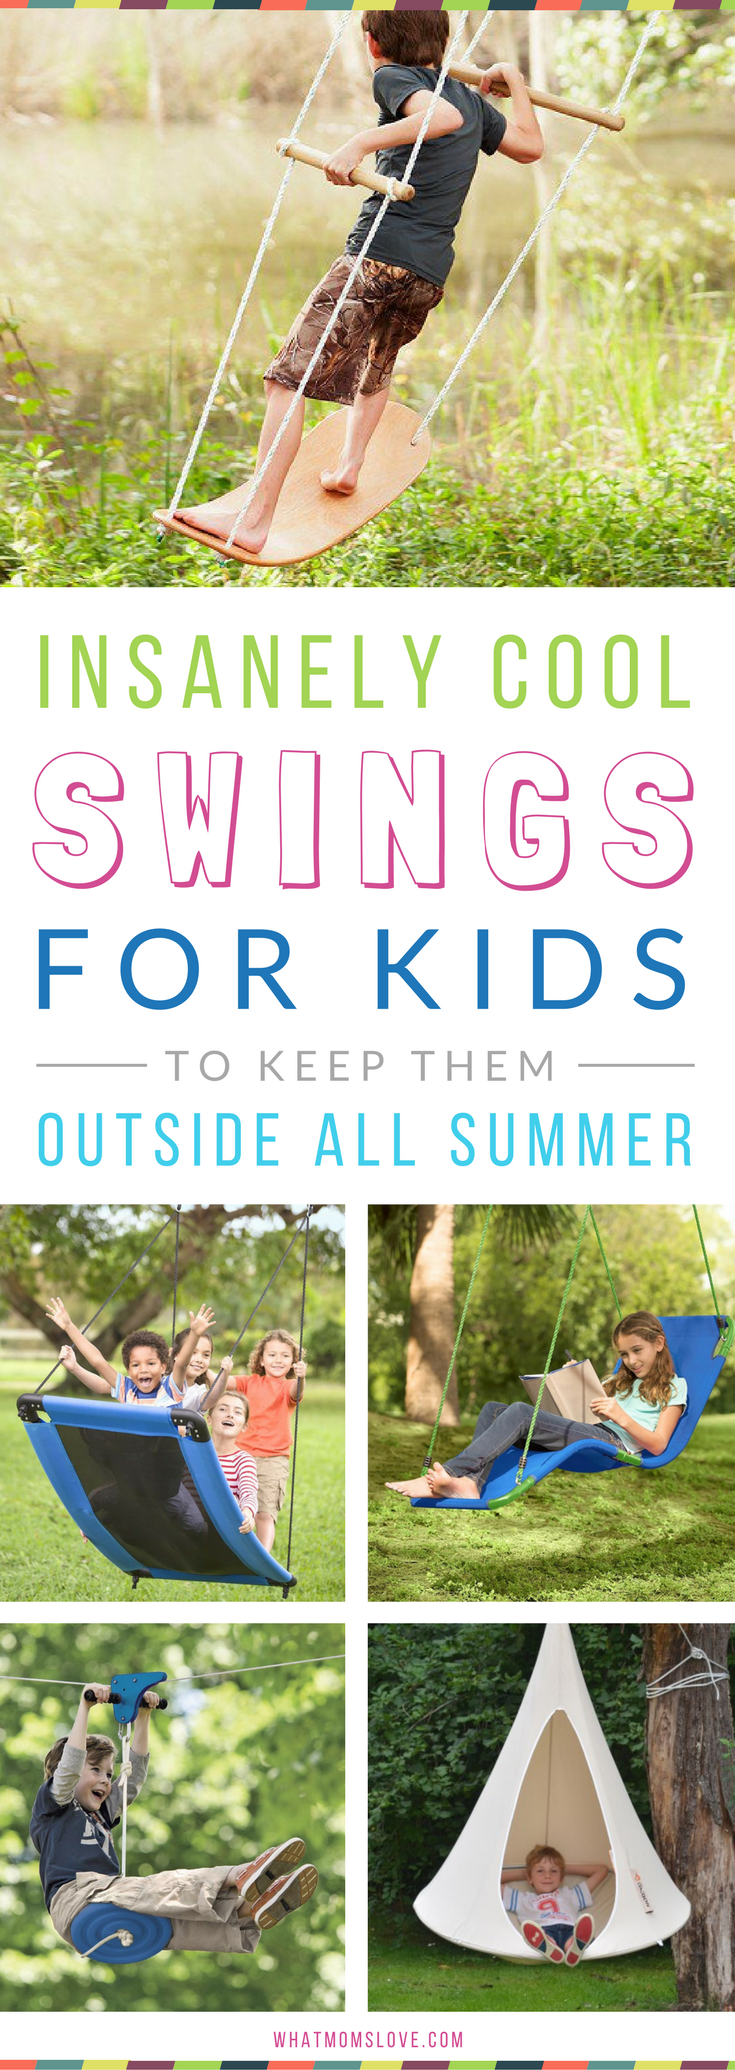 8 Outrageously Cool Swings HideOuts That Will Keep Your Kids – Fun Backyard Ideas for Kids